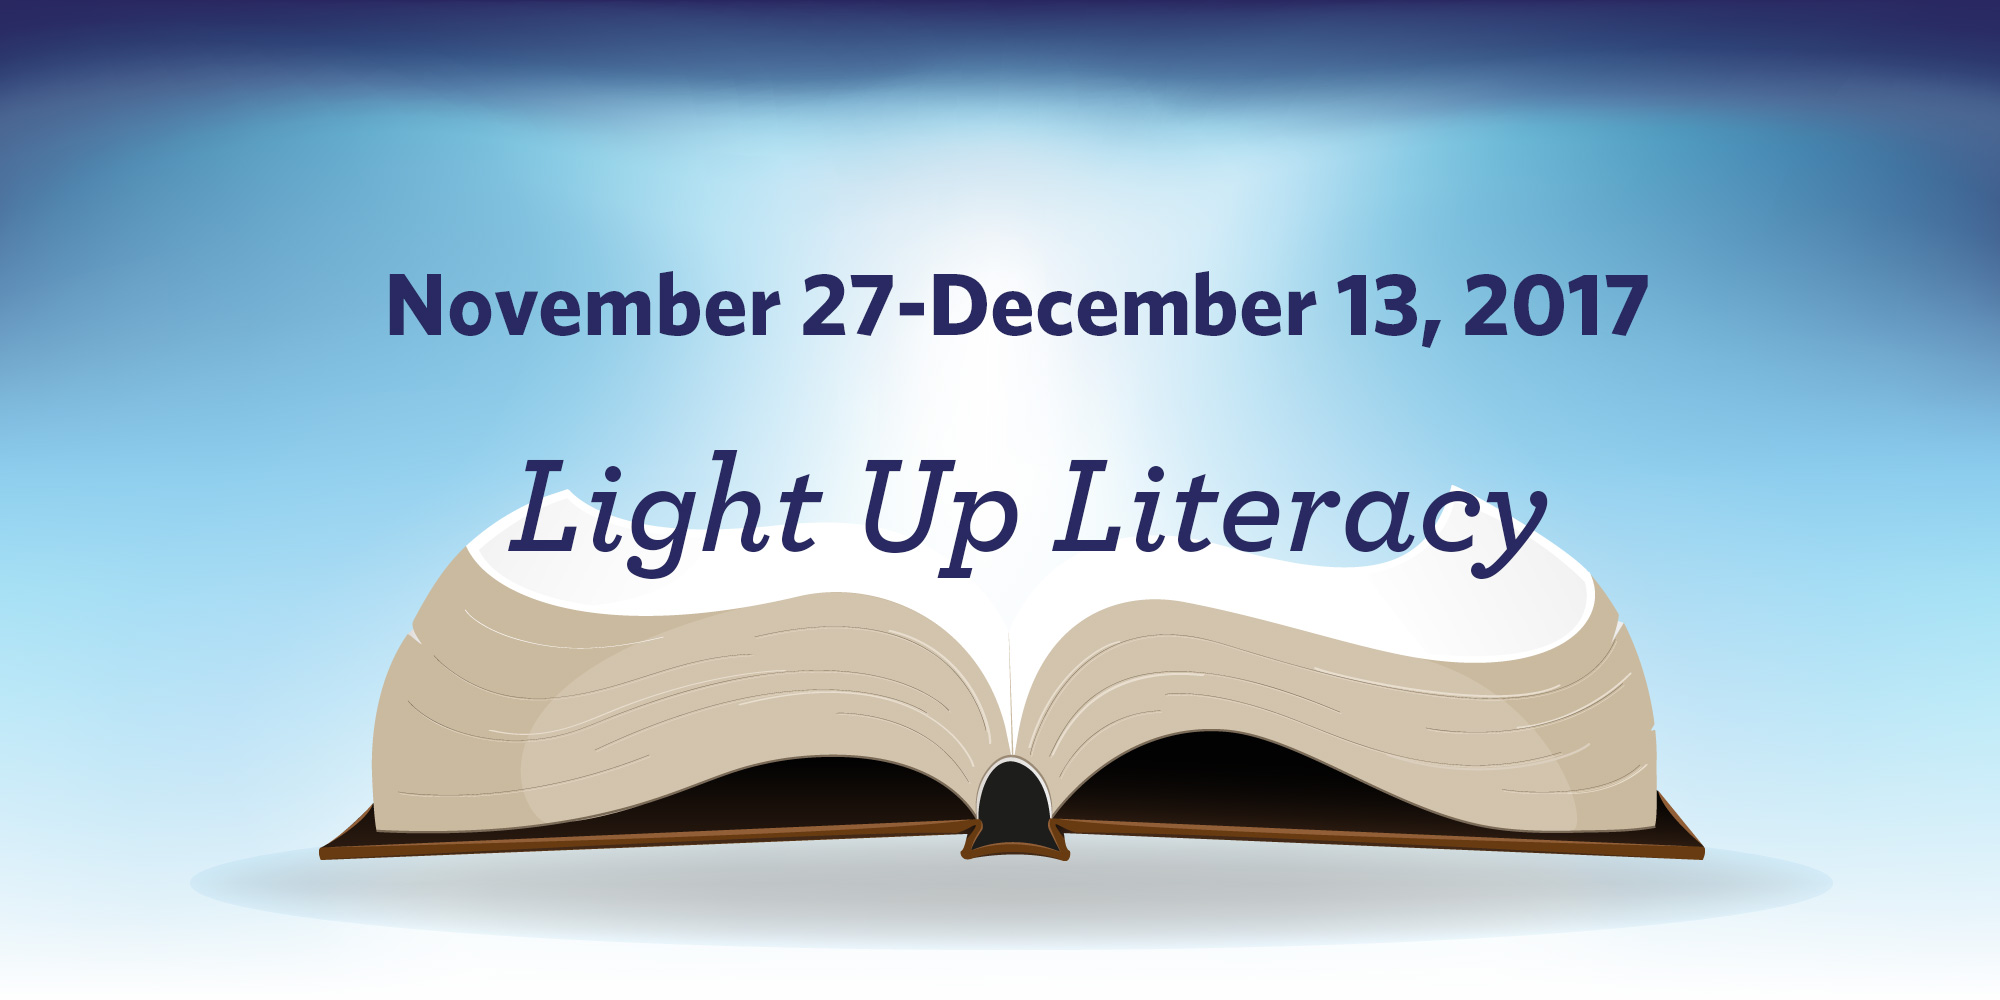 Light Up Literacy